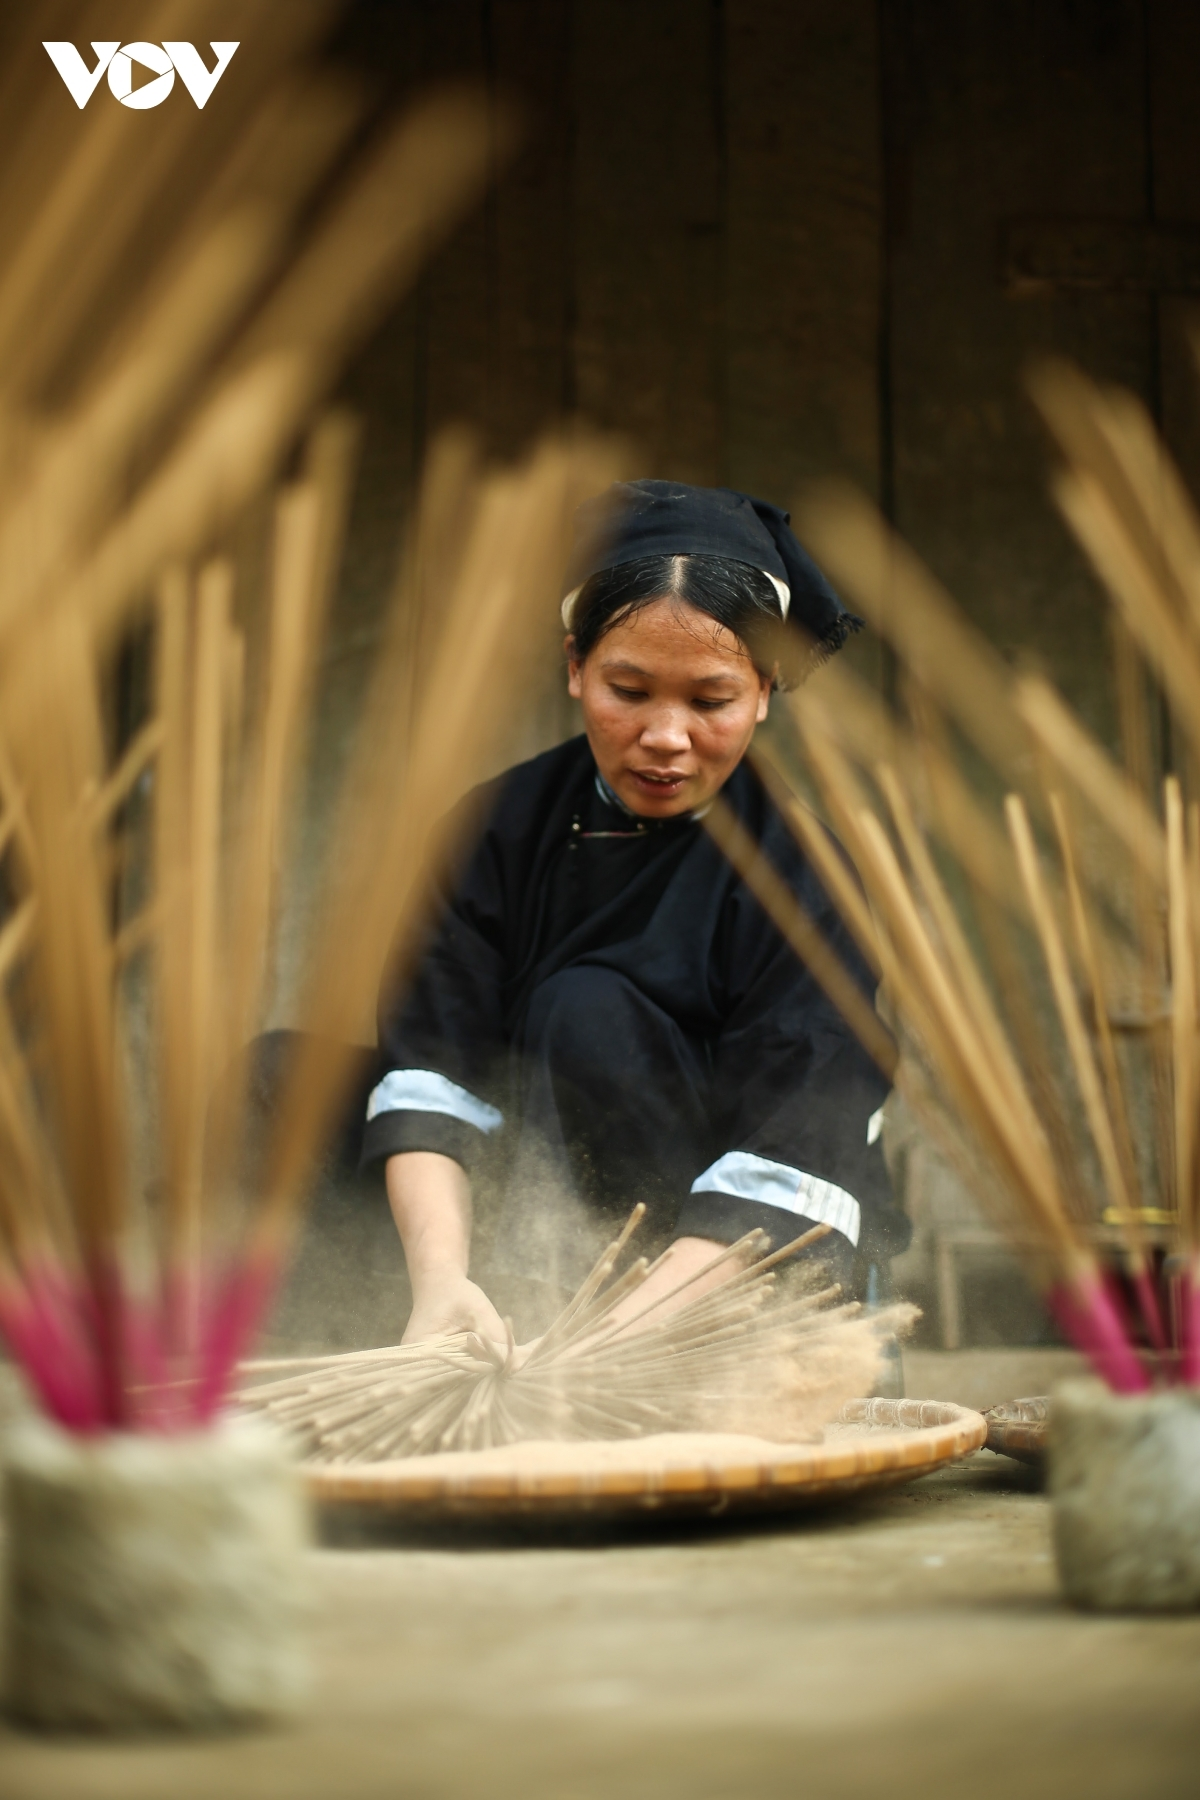 Each piece is soaked four times in a flour mixture of sawdust and agarwood powder in order to create beautiful incense sticks.